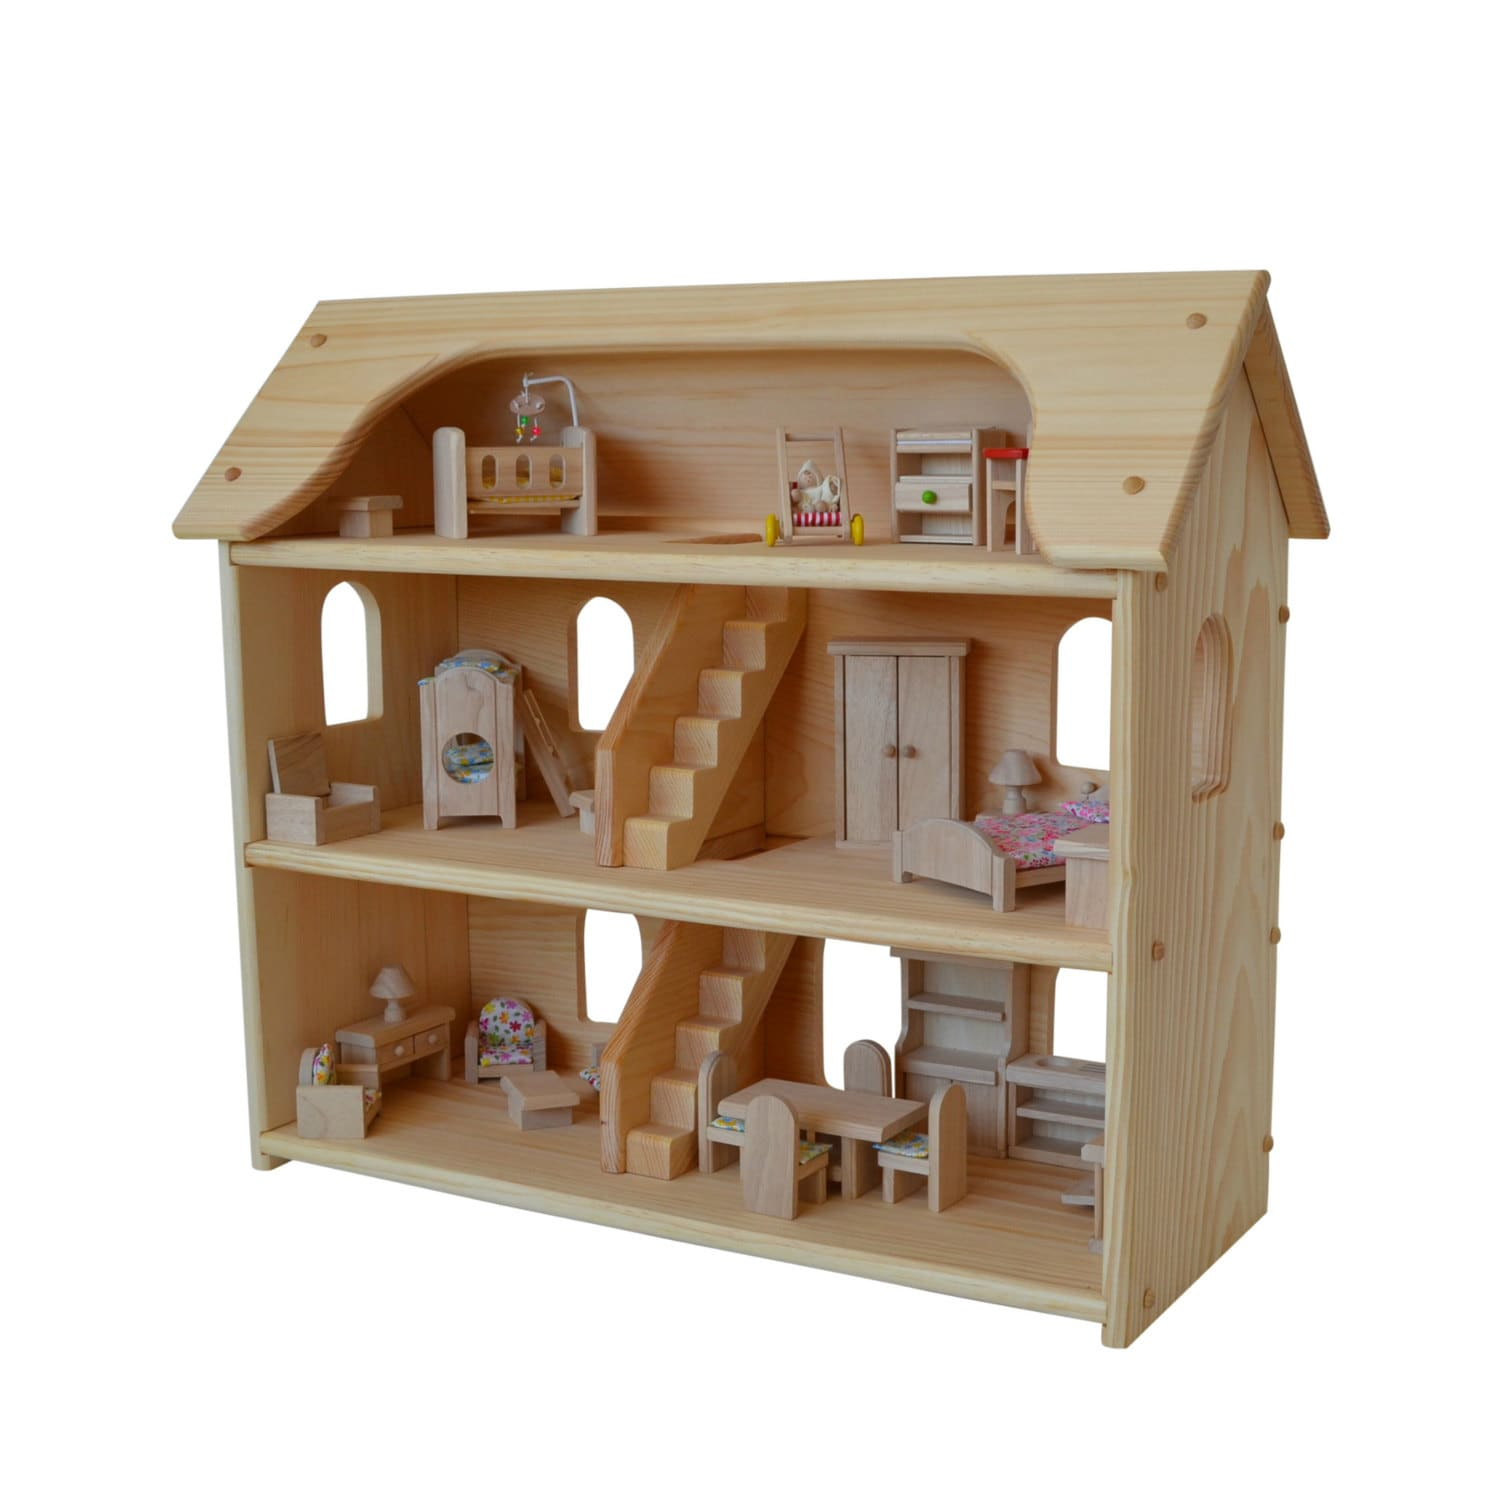 Doll House Furniture Sets. 🔎zoom Doll House Furniture Sets F